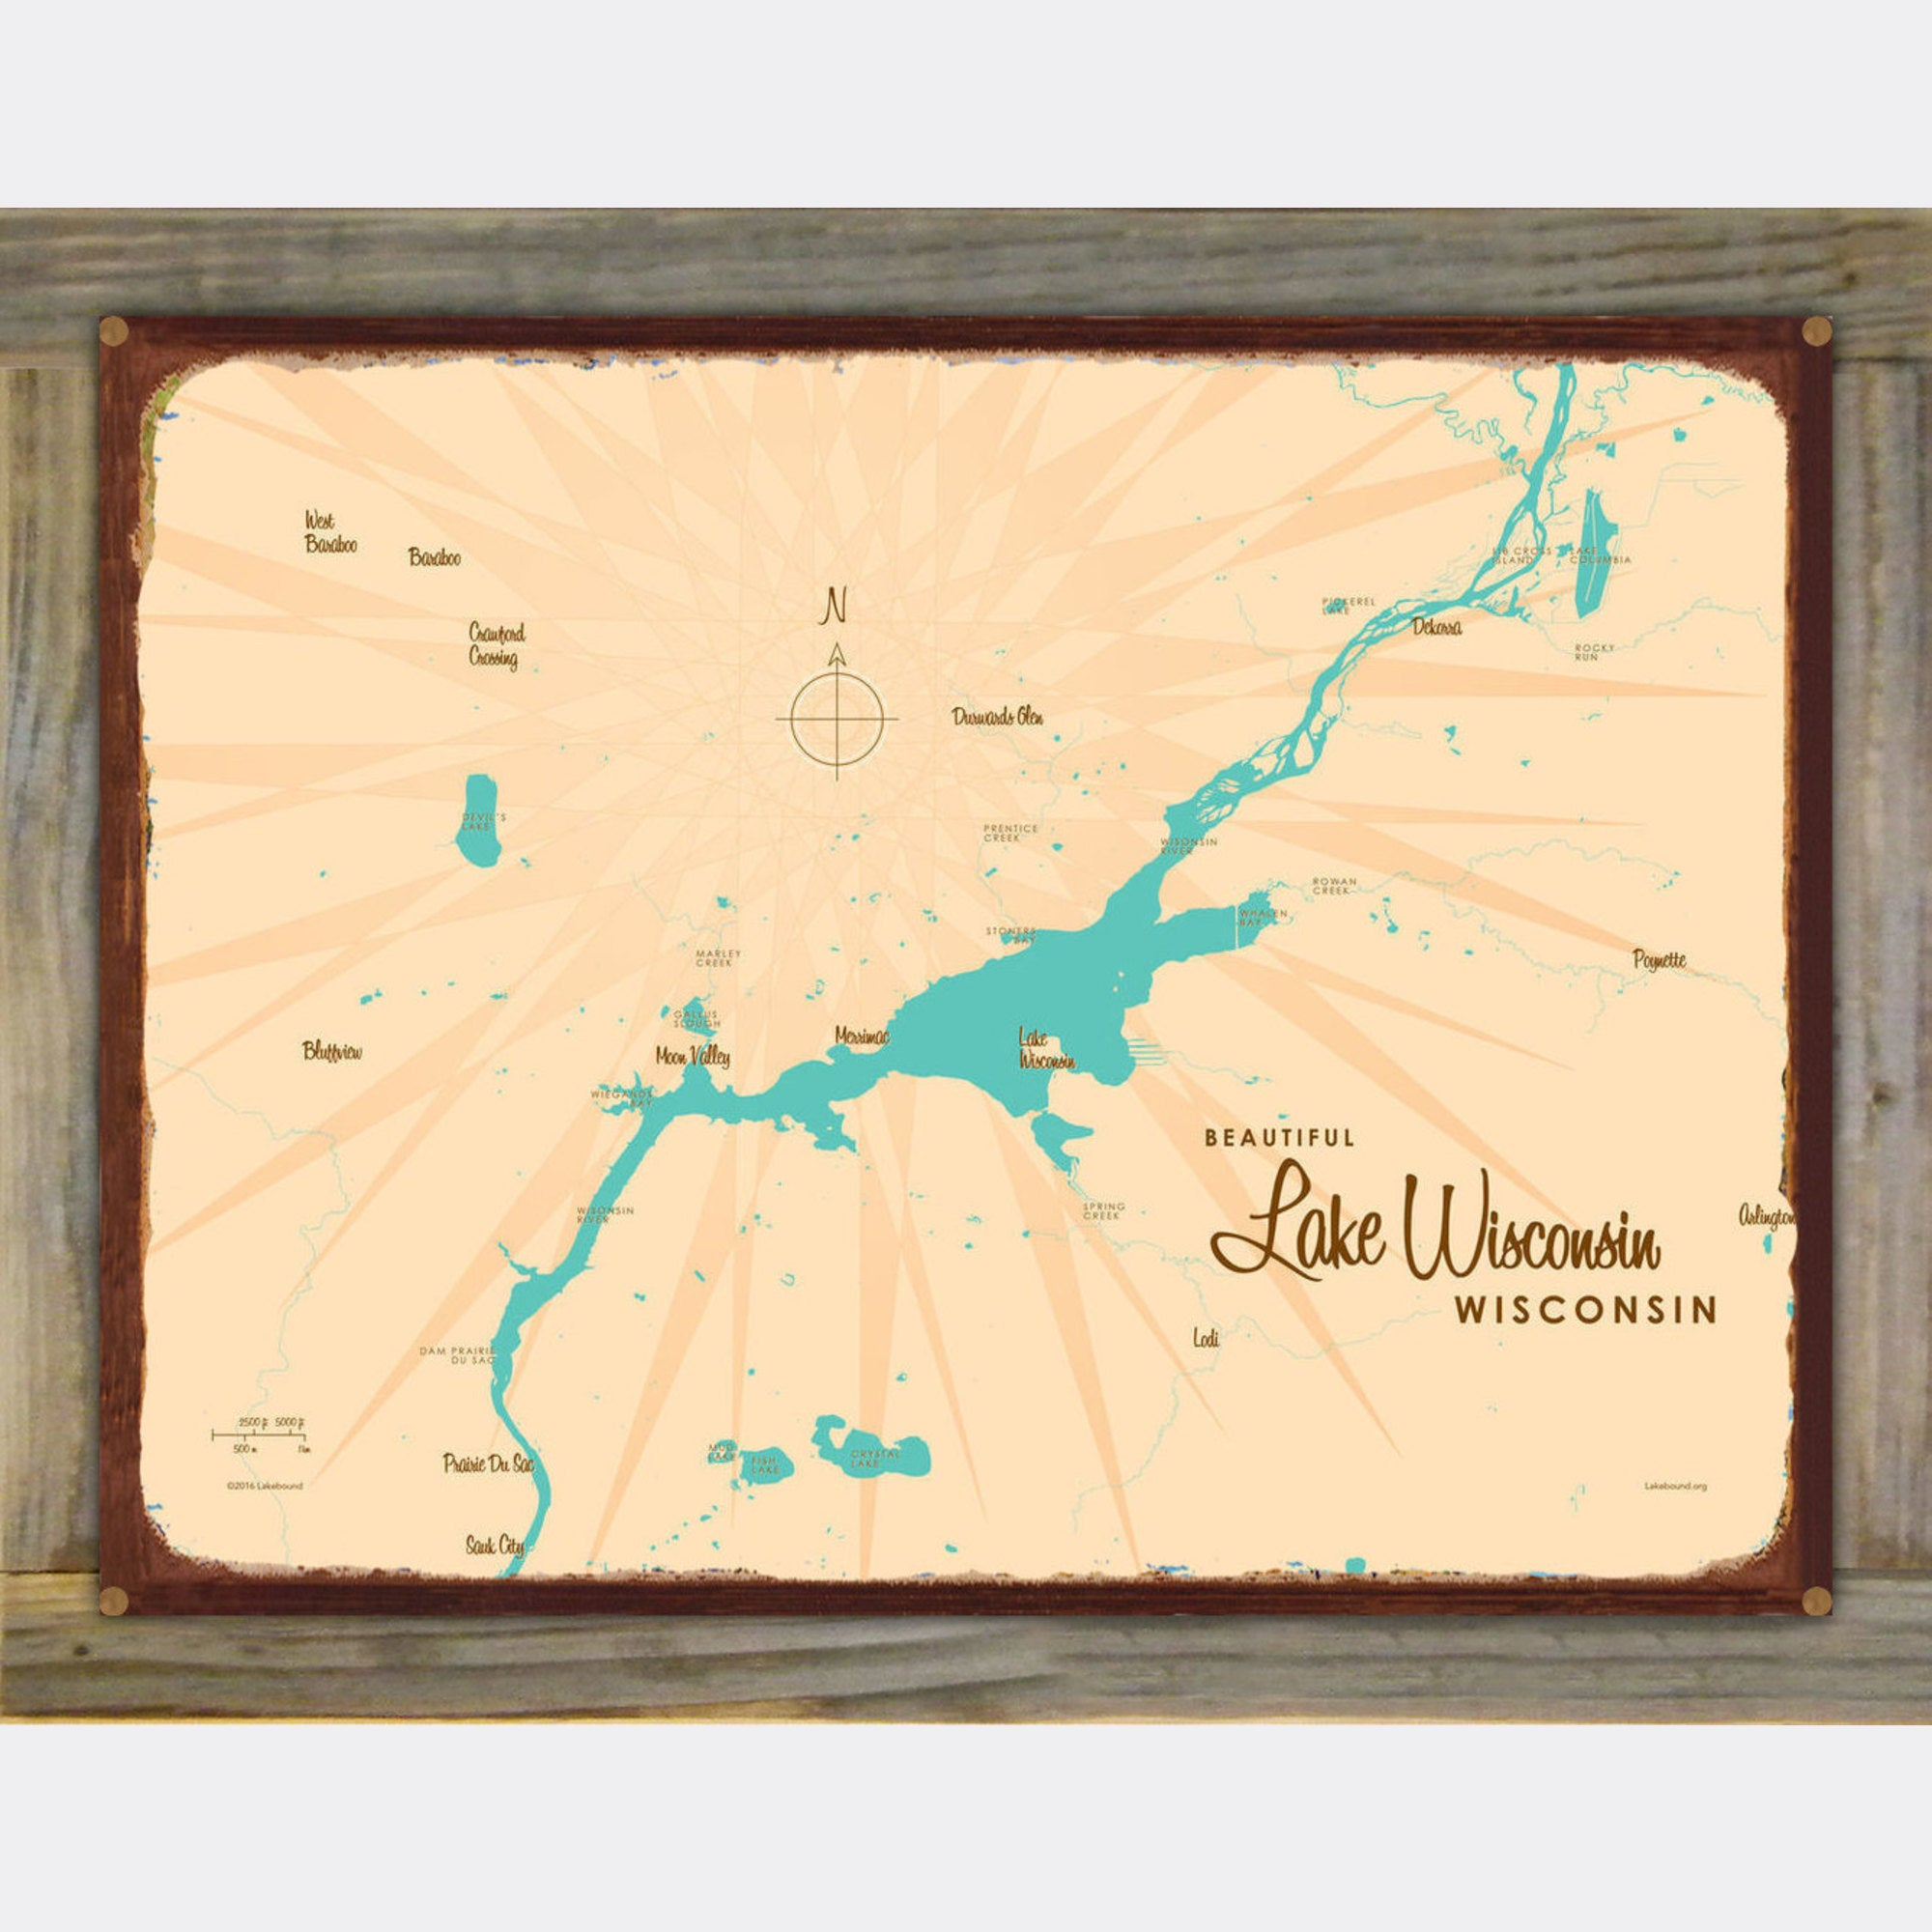 Lake Wisconsin Wisconsin, Wood-Mounted Rustic Metal Sign Map Art